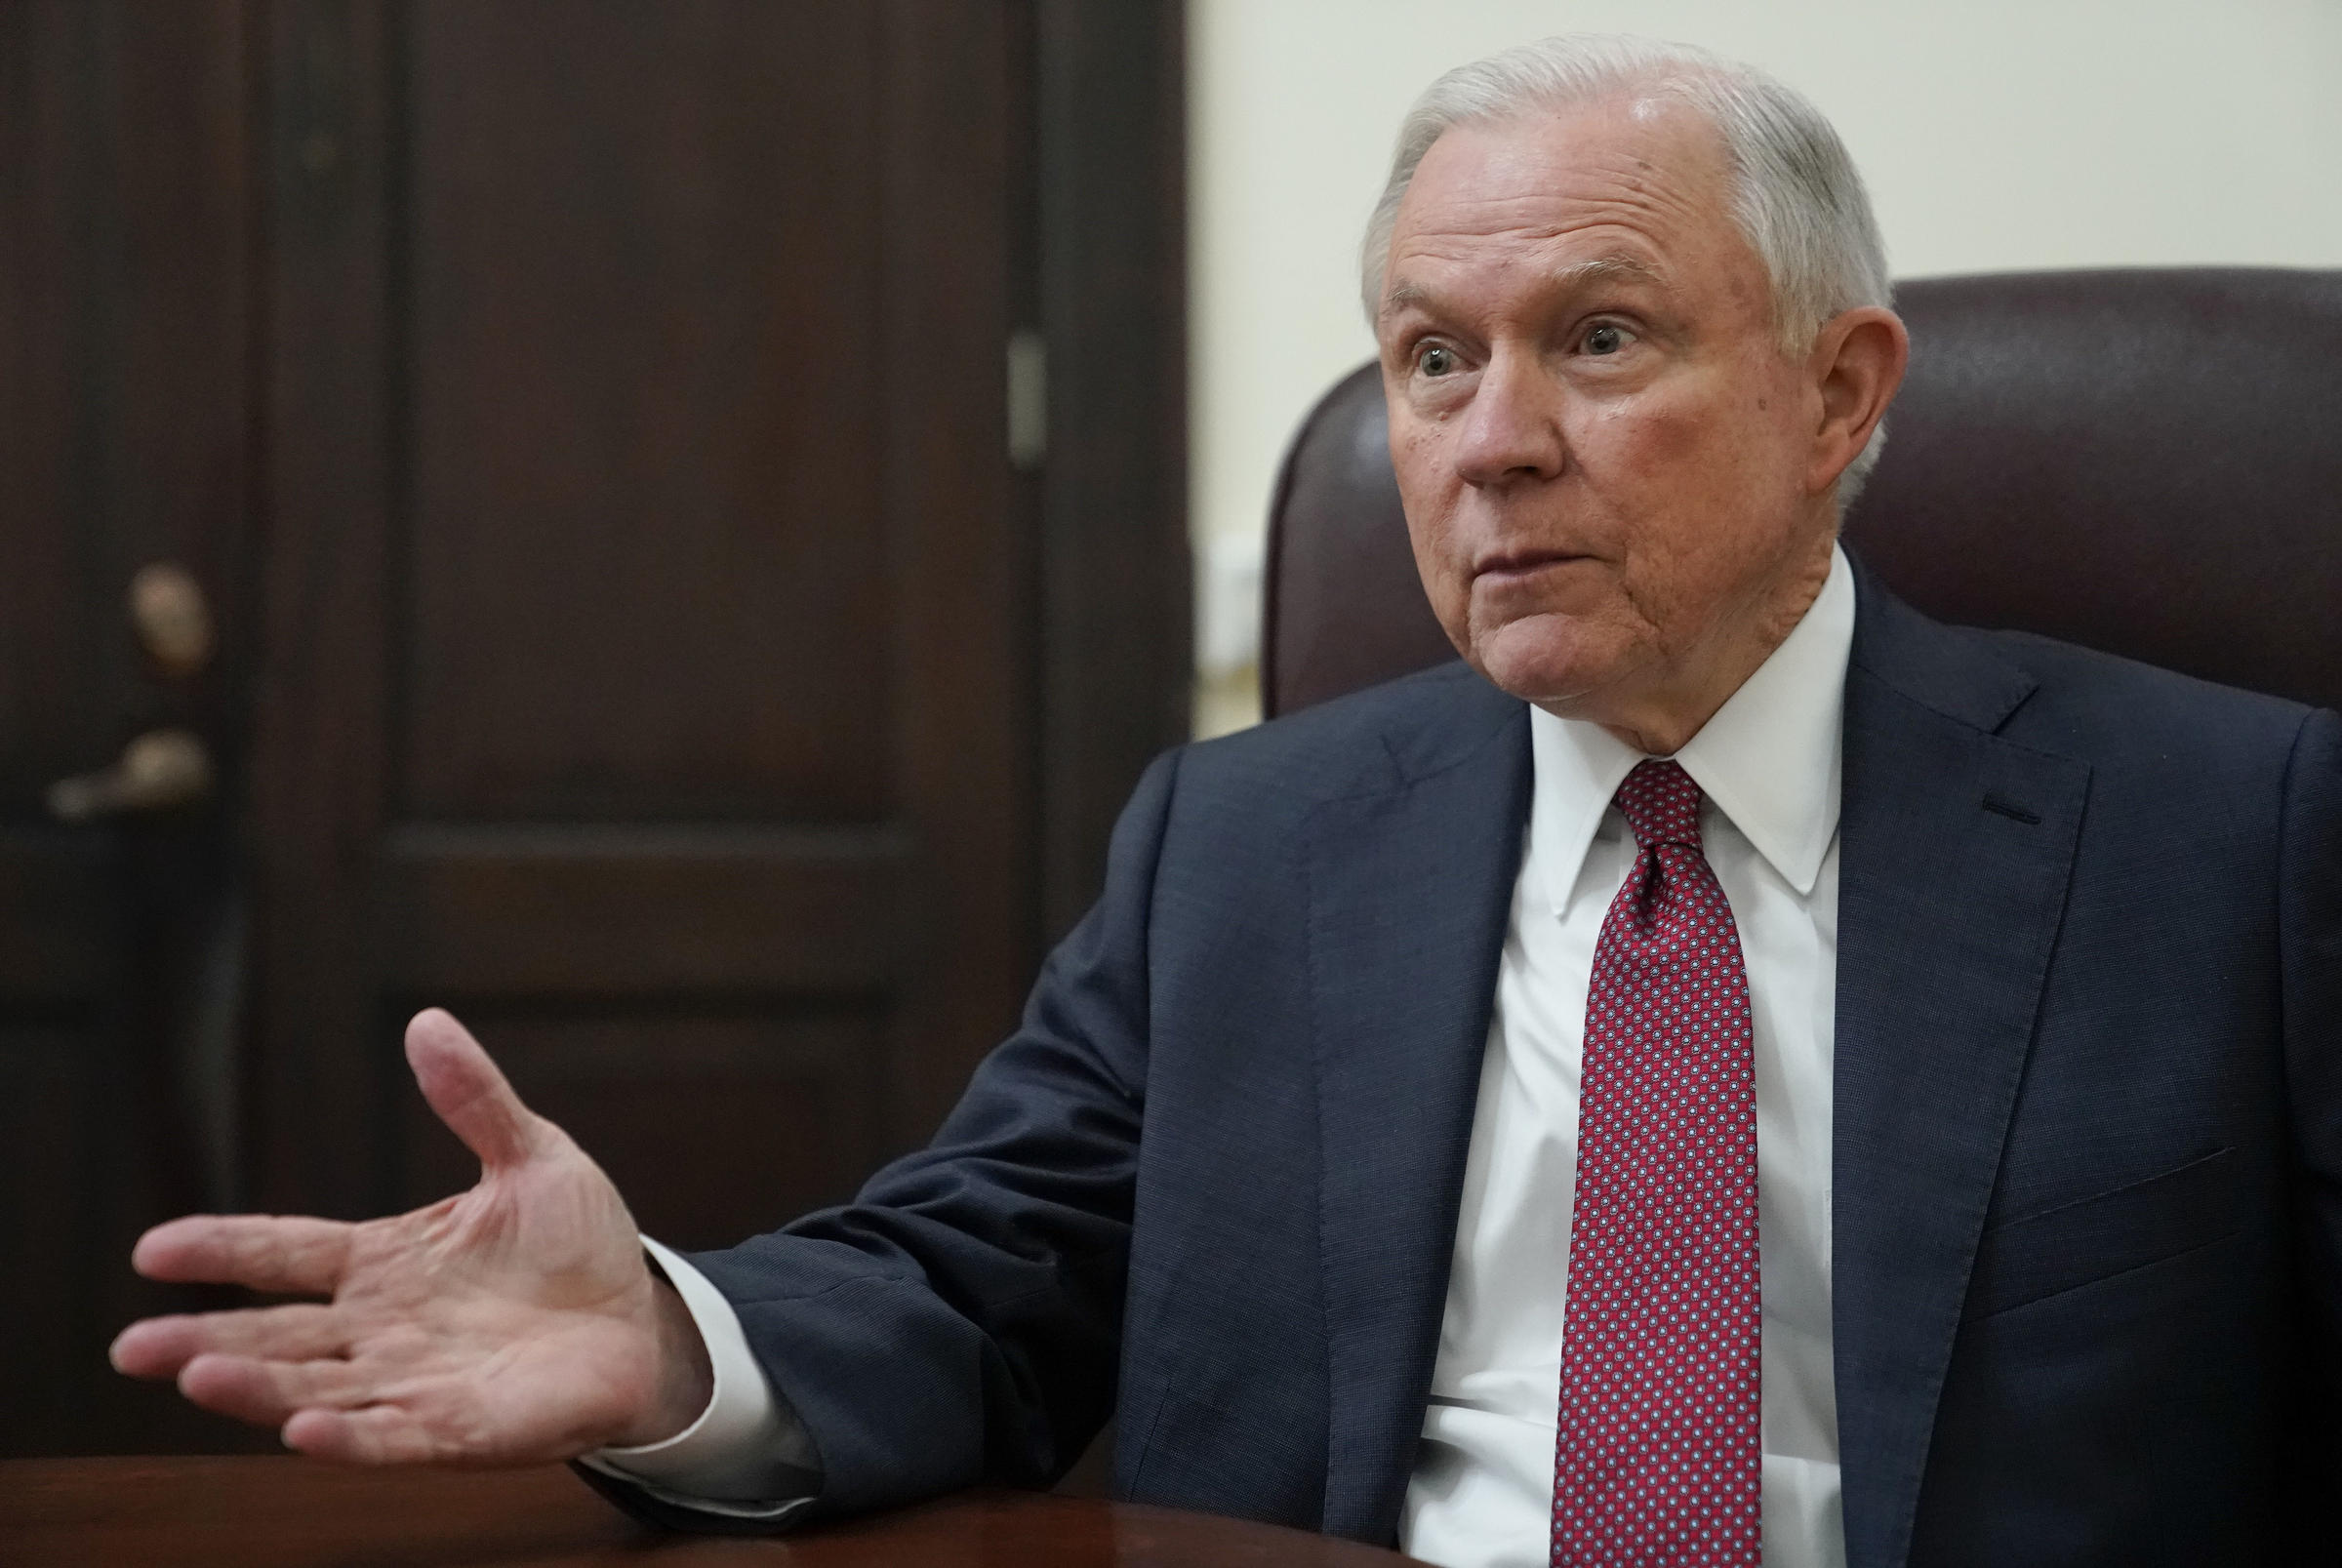 Under Jeff Sessions, the Justice Department is cracking down on leakers